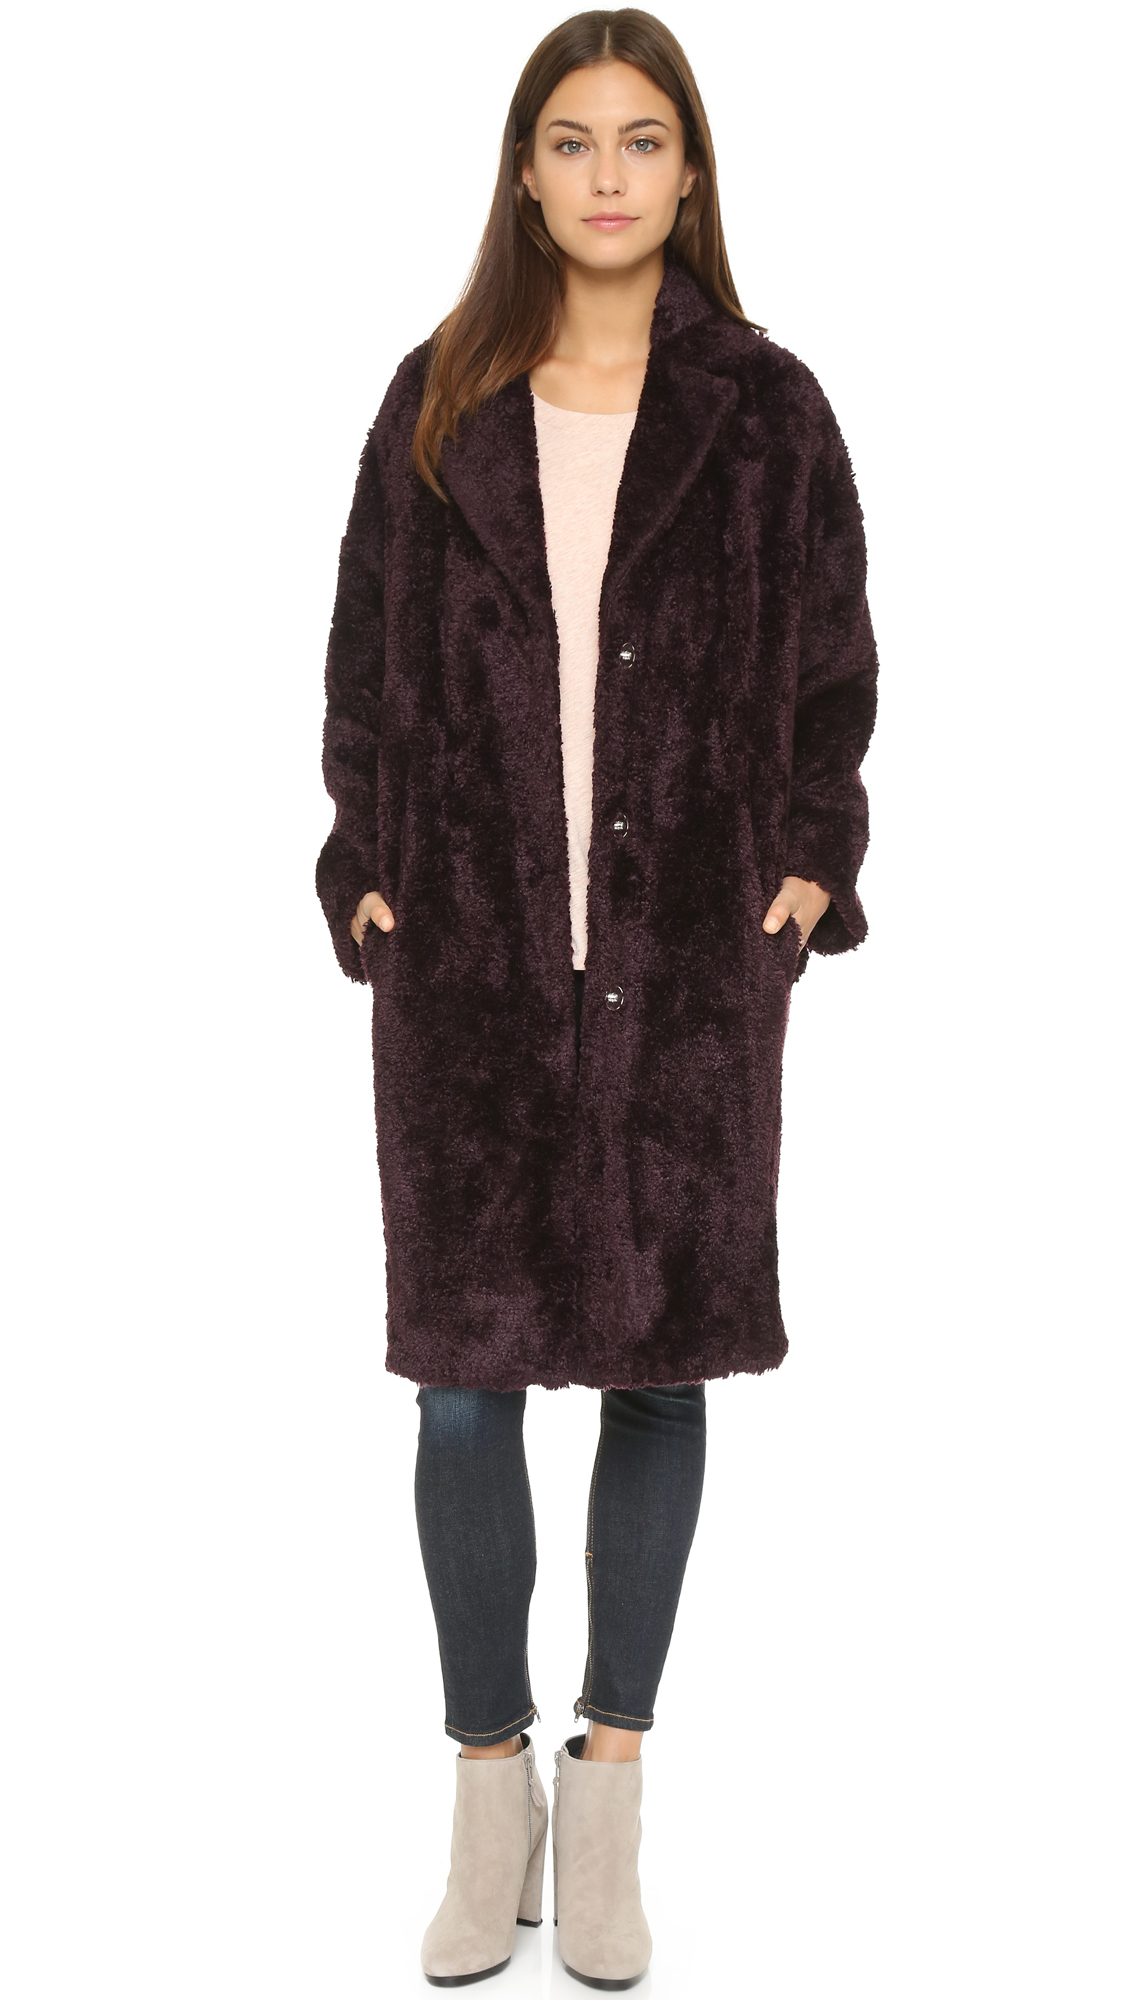 074389155f Whistles Teddie Faux Fur Cocoon Coat - Bordeaux in Purple - Lyst